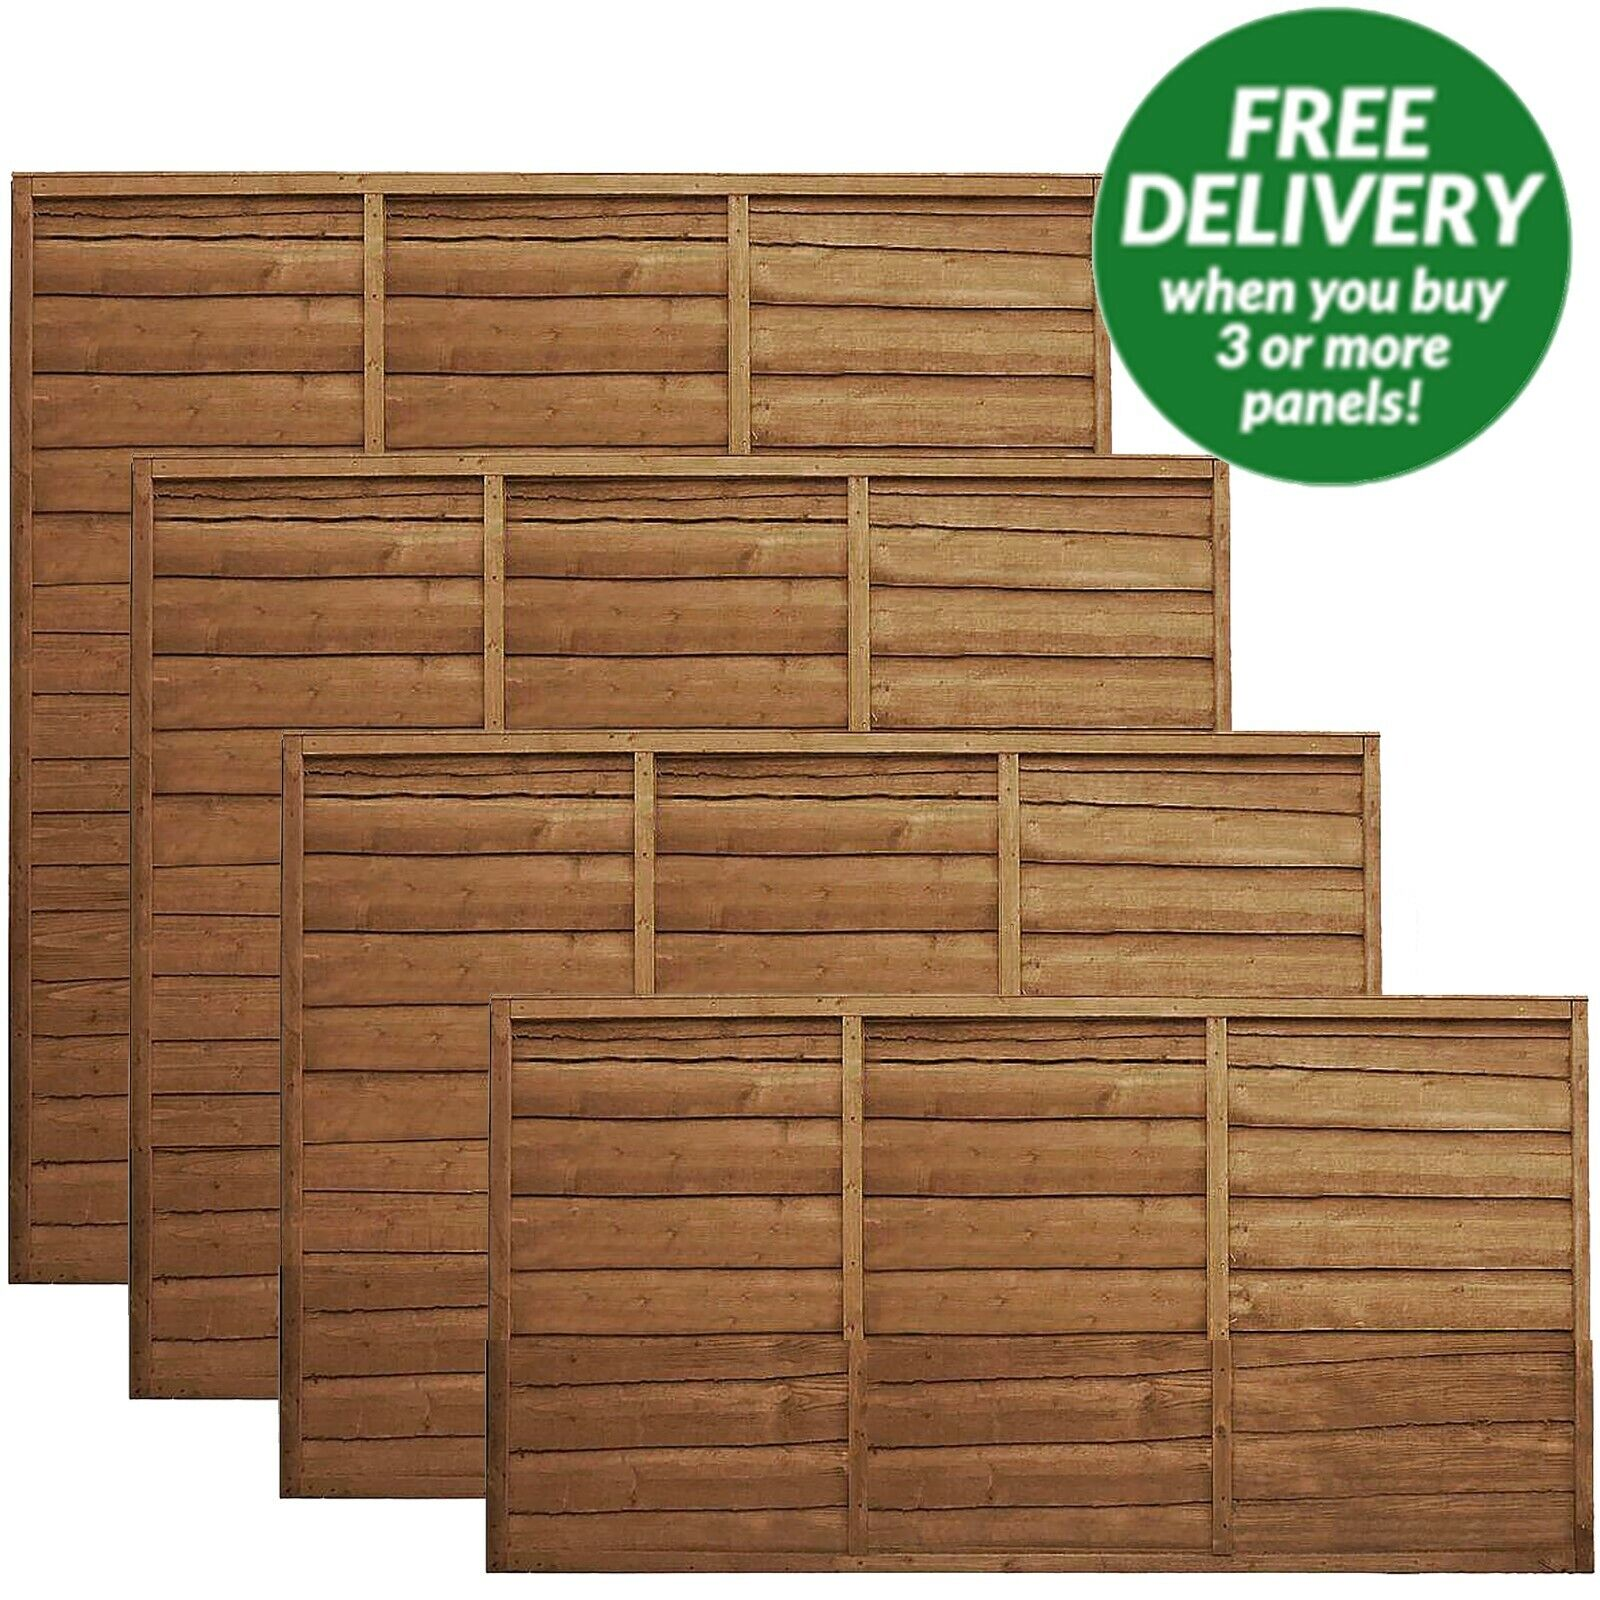 garden fence - 6ft 5ft 4ft 3' PRESSURE TREATED WANEY EDGE LAP FENCE PANEL TANALISED WOOD PANELS